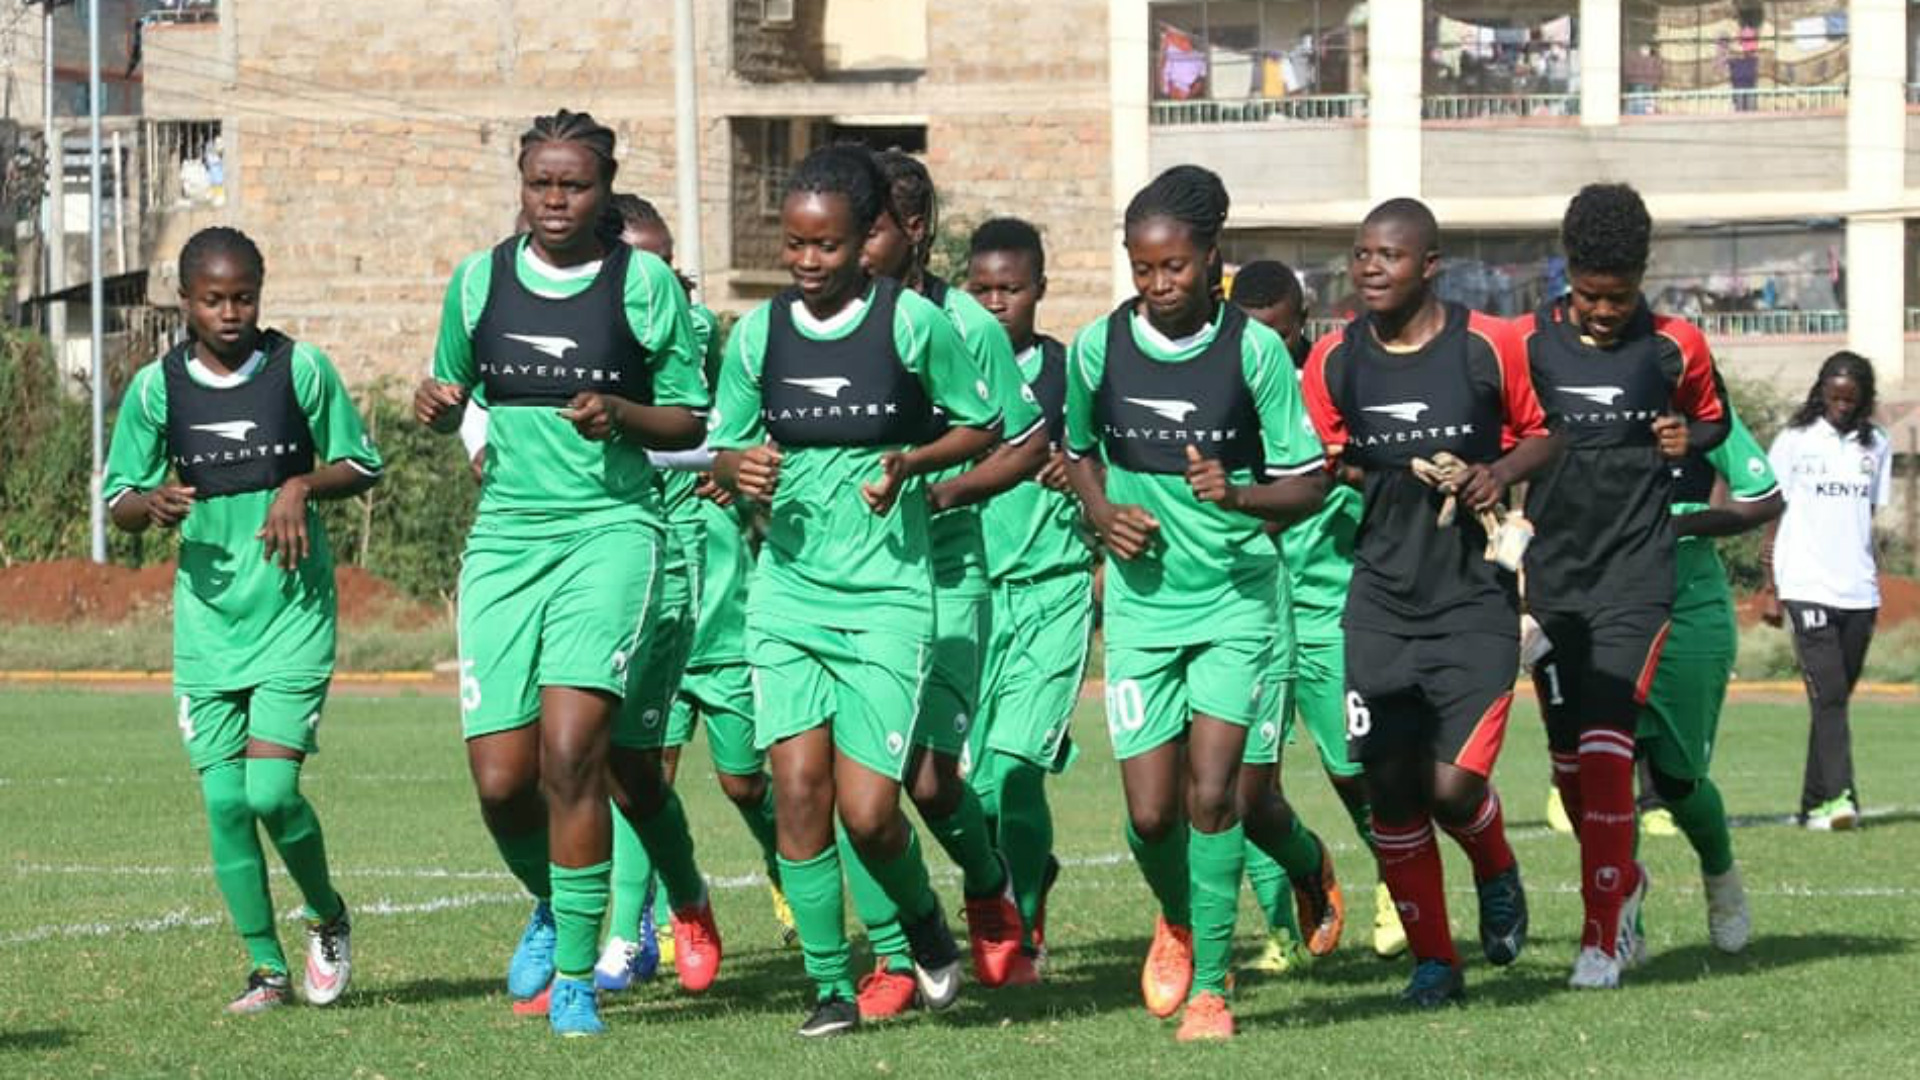 Harambee Starlets Book International Friendly Ahead of Olympic Qualifier